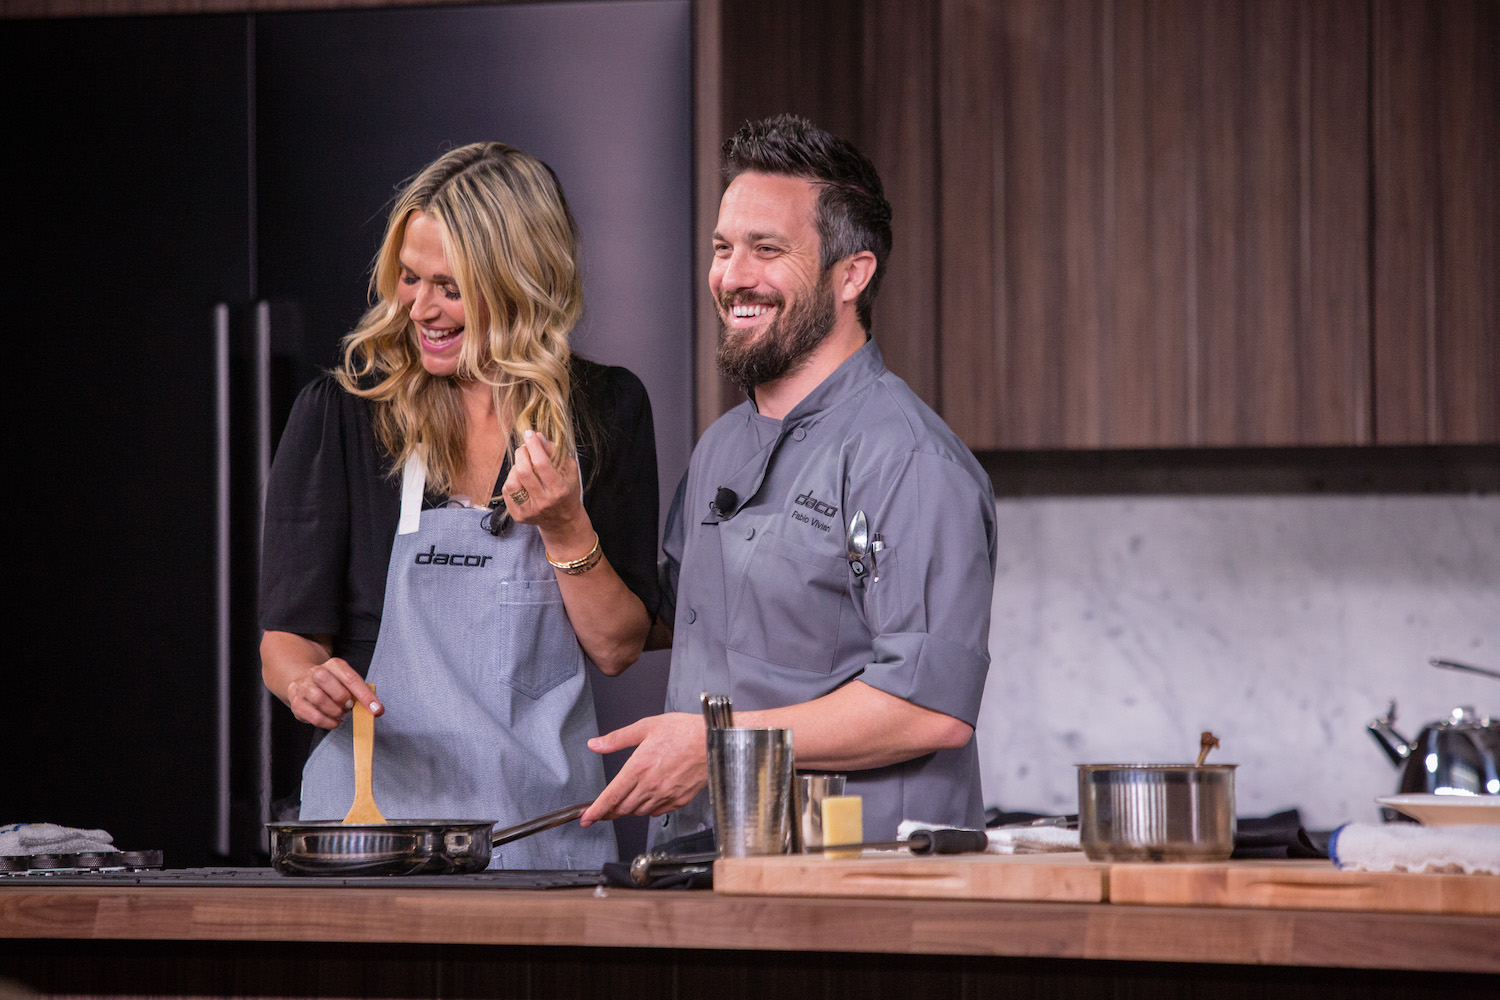 Molly Sims and chef Fabio Viviani